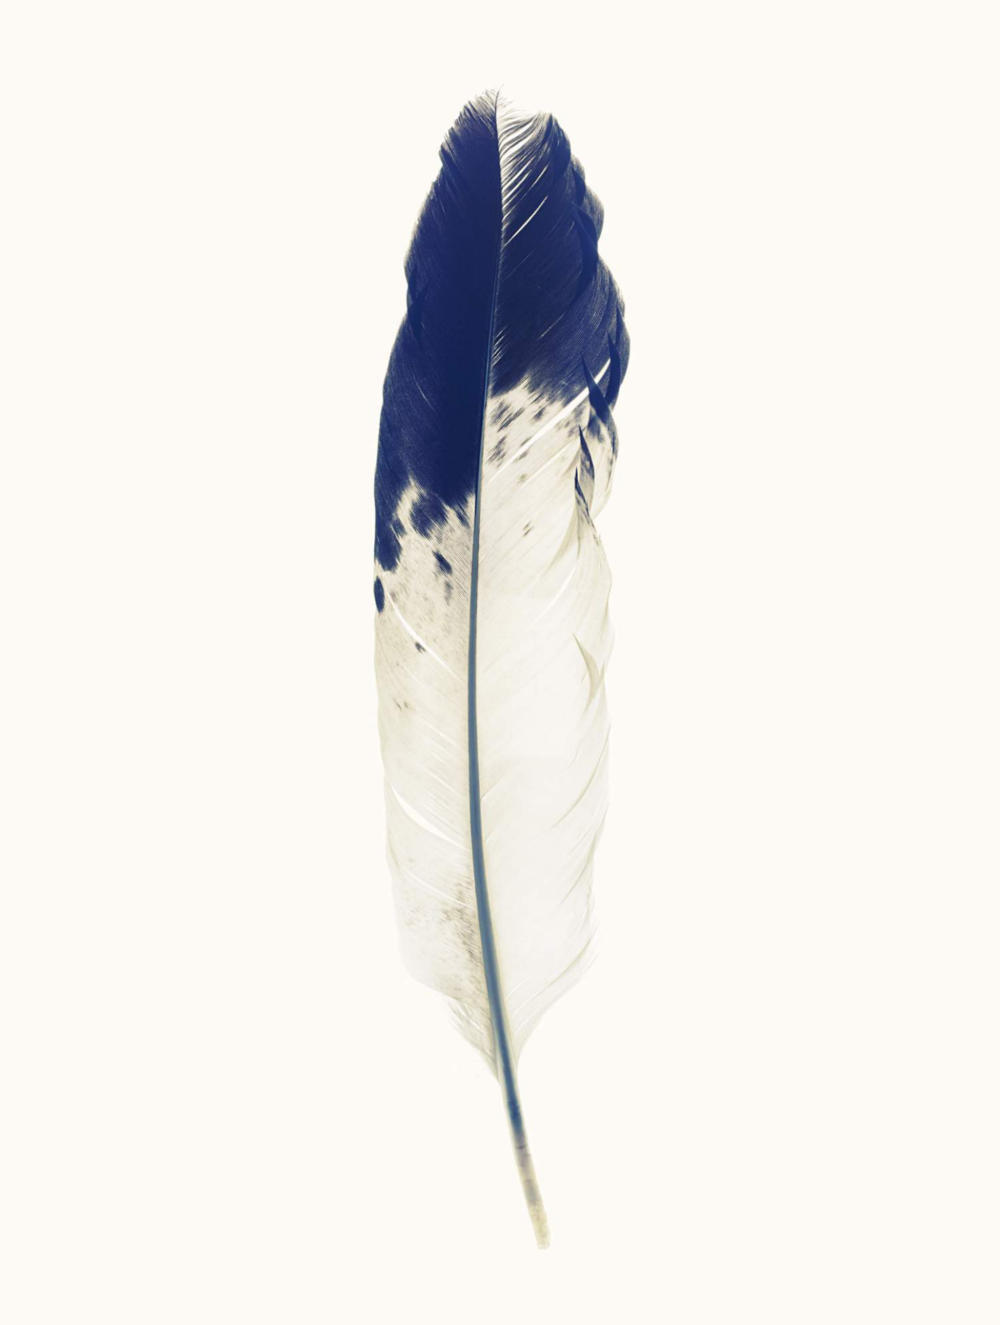 "Lyle Owerko, ""Eagle Hunter Feather 2"" 2015. Edition of 3 + 2 AP's. Giclee on textured fine art paper. 60 x 90."